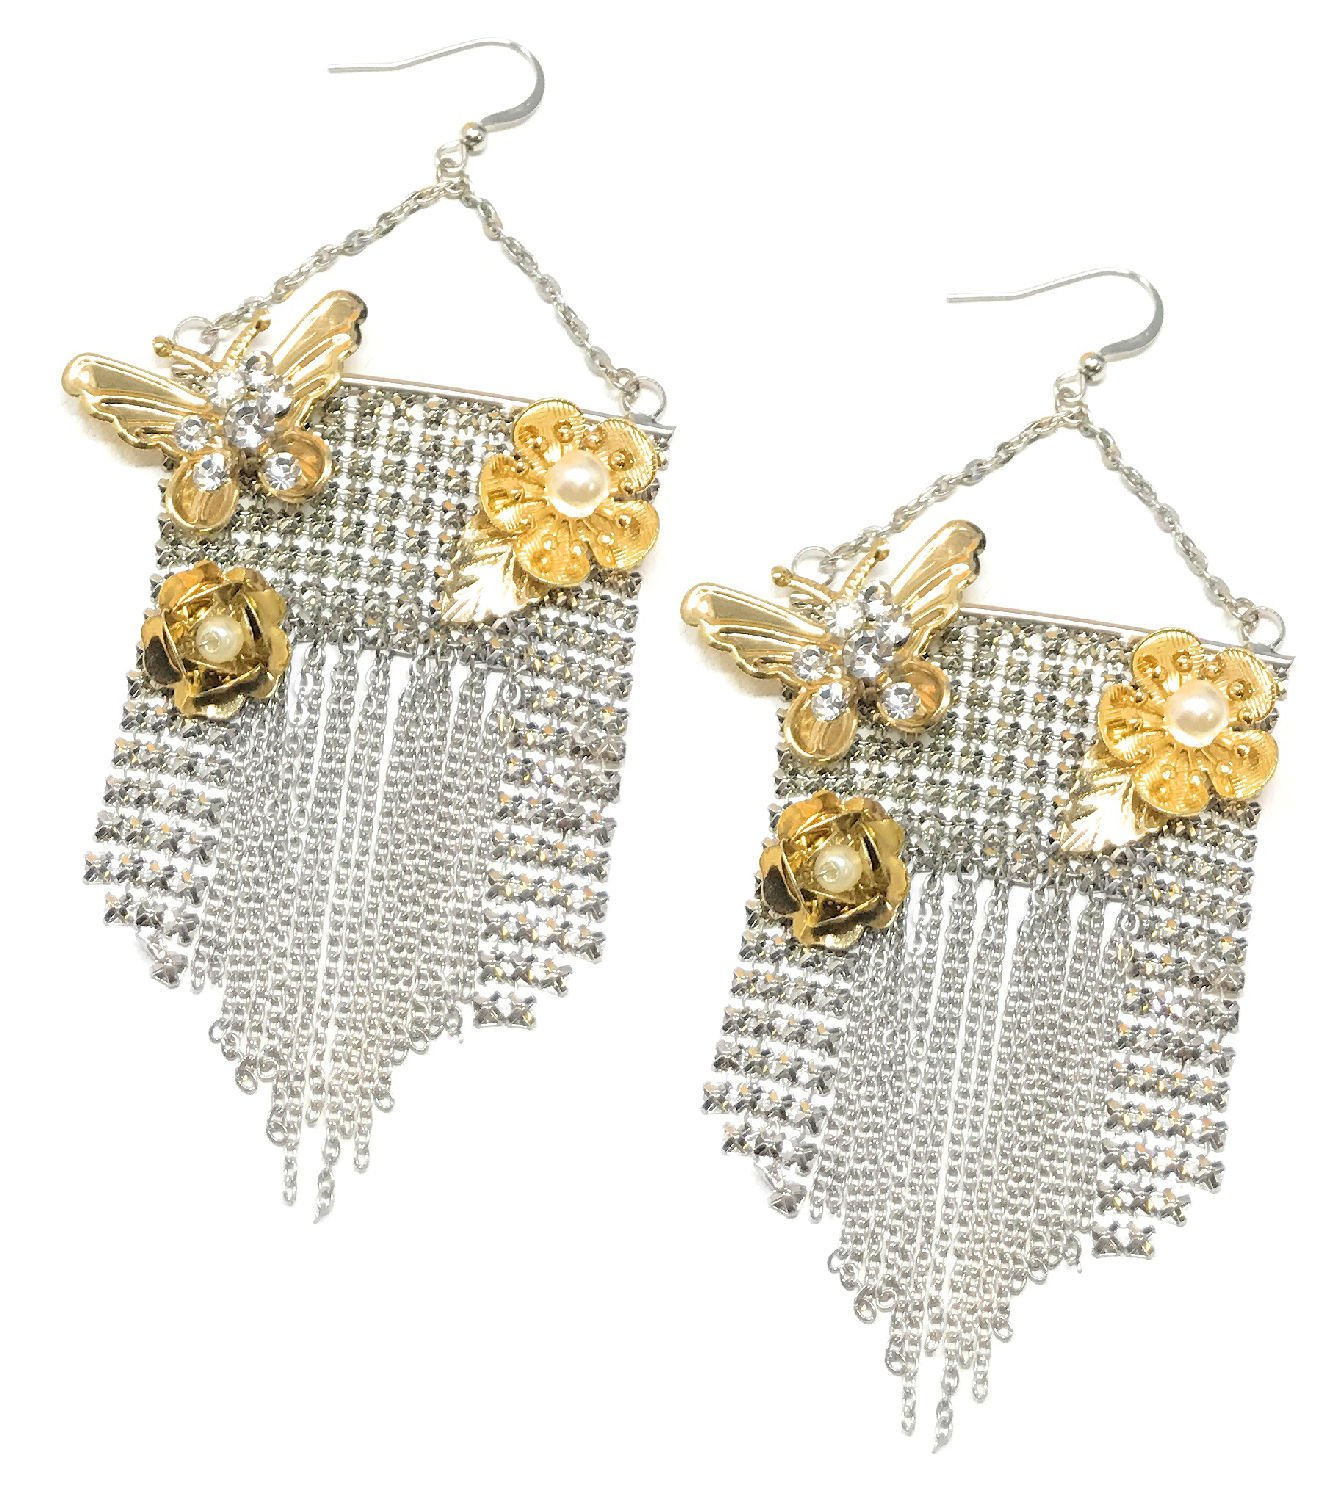 Fashion Glam Rhinestone Butterfly Rose Silver-Plate Mesh Chain Dangle Earrings Set